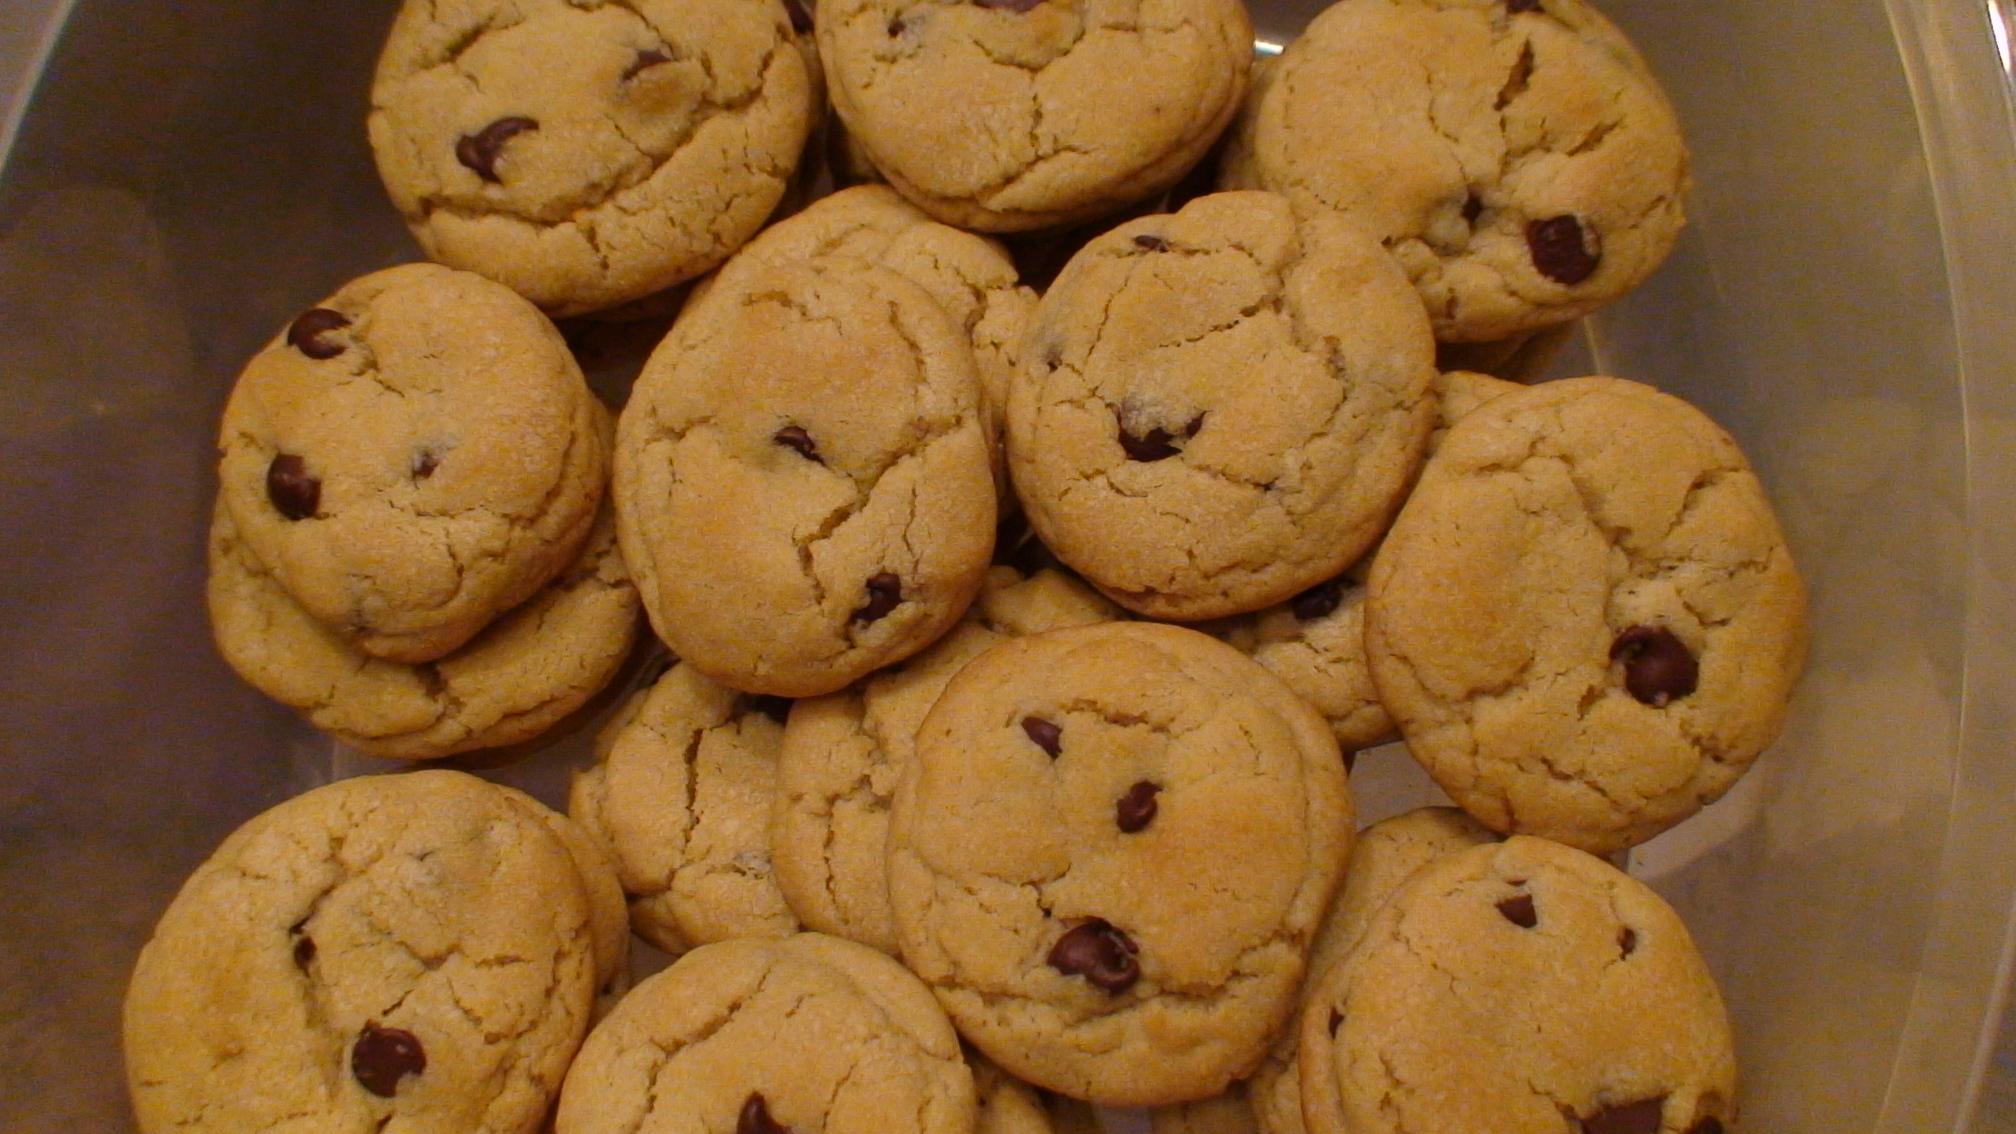 SECRET CHOCOLATE CHIP COOKIE RECIPE - Good Ideas and Tips